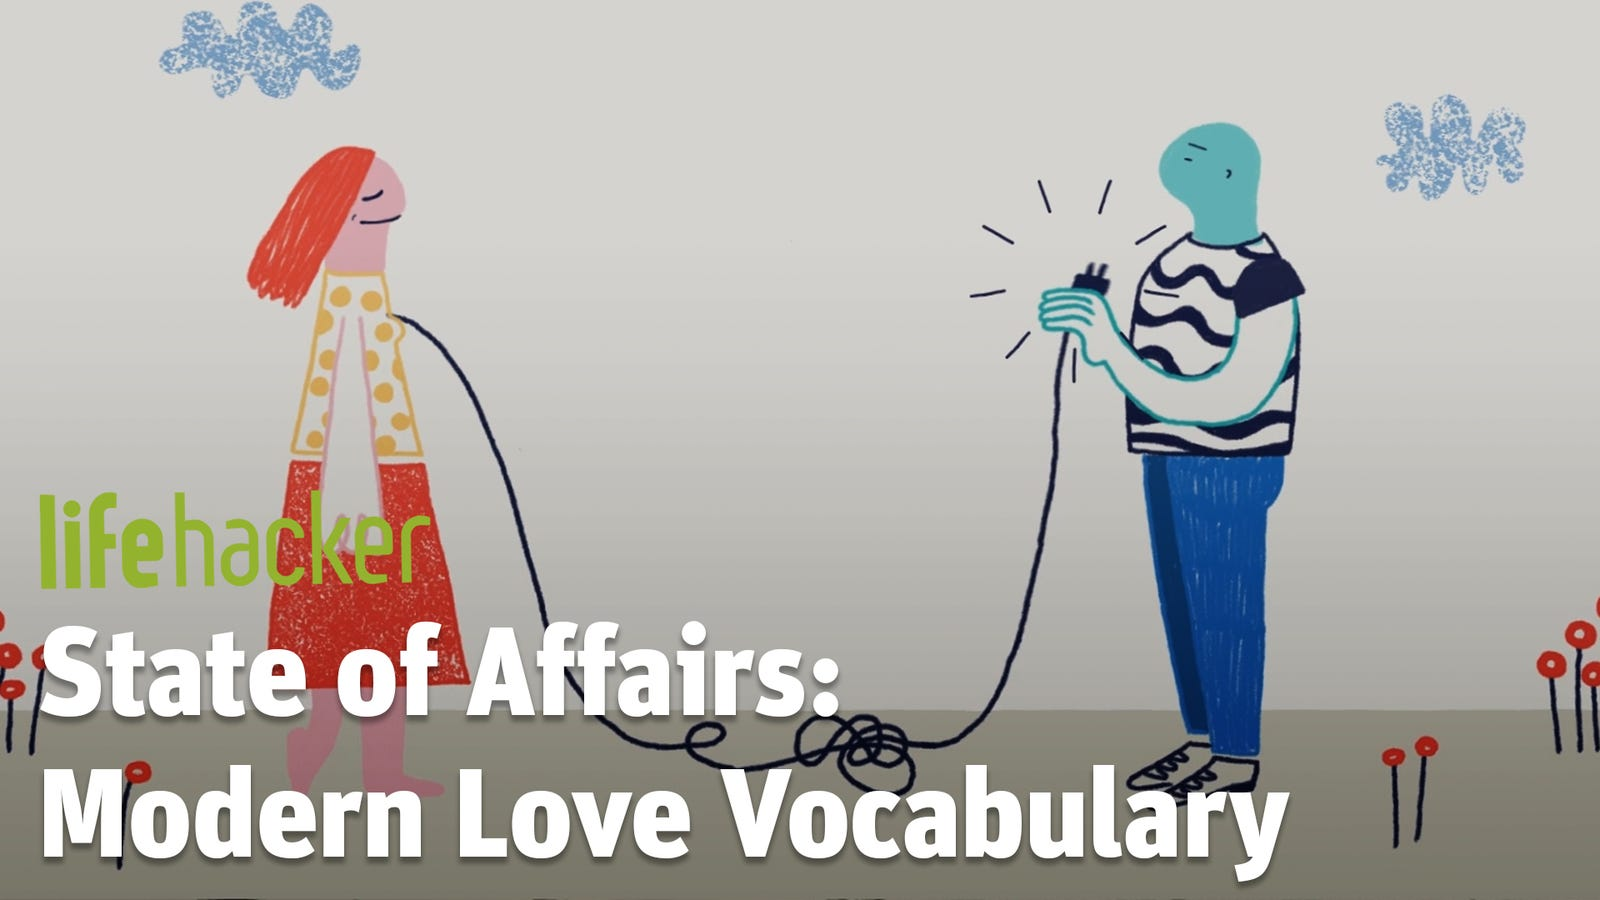 Watch How to Avoid Romantic Entanglements at Work video